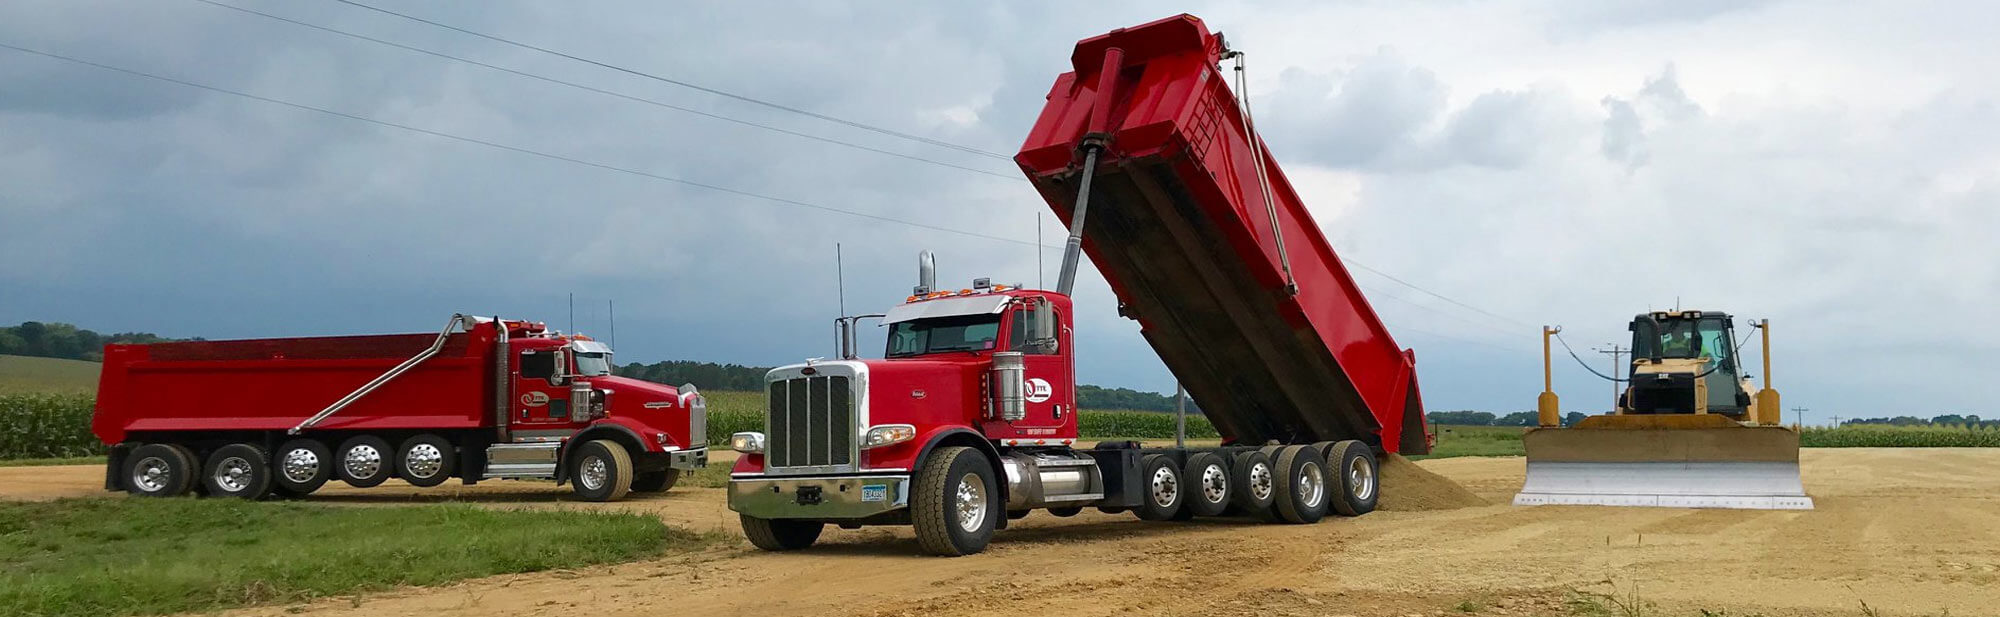 Red Otte Excavating dump truck pouring fresh aggregate at an excavating site